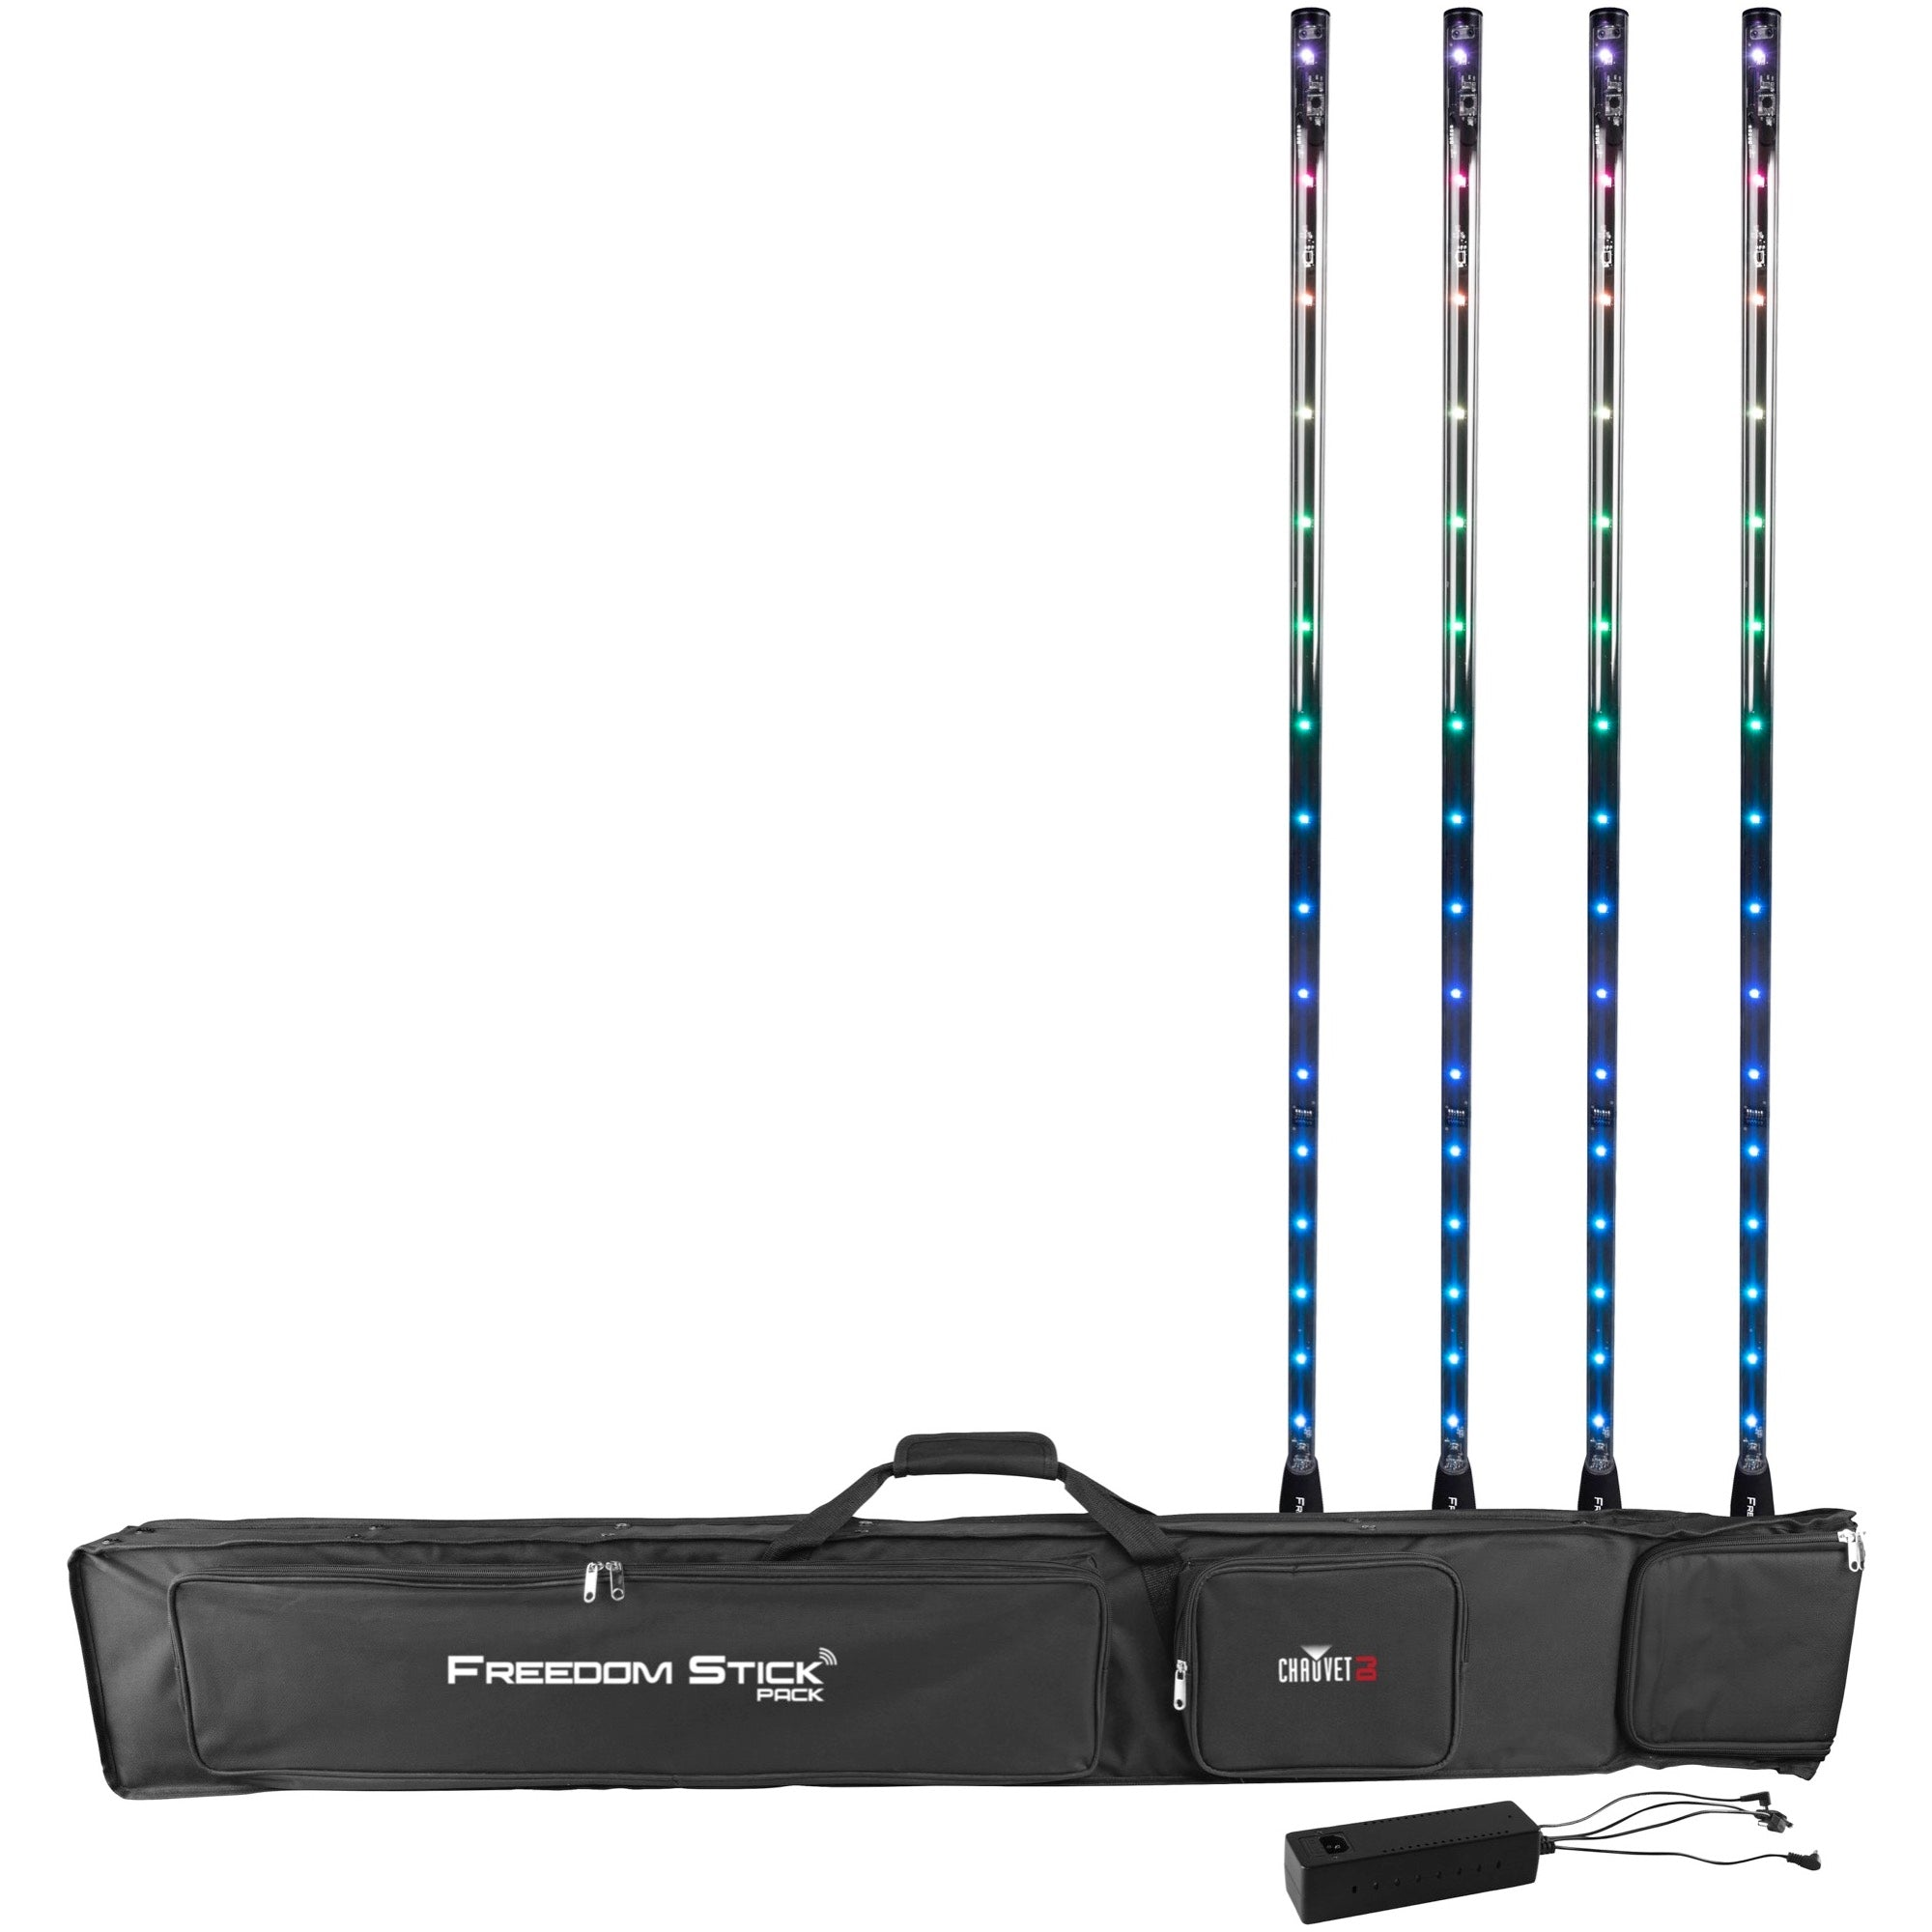 Chauvet DJ Freedom Stick Pack Lighting Package